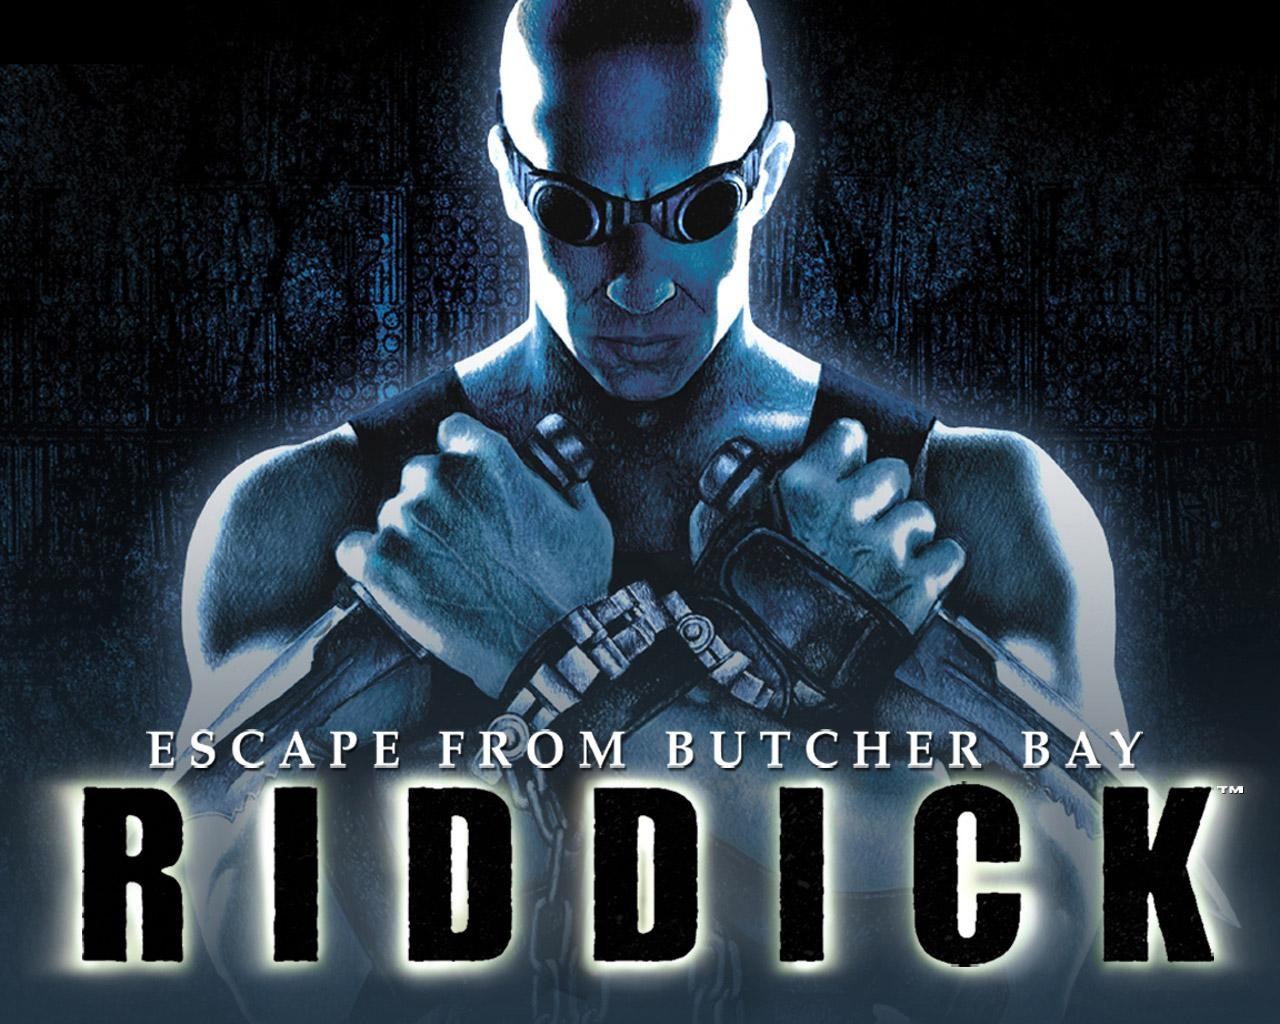 Обои Chronicles of Riddick: Escape from Butcher Bay 1280x1024